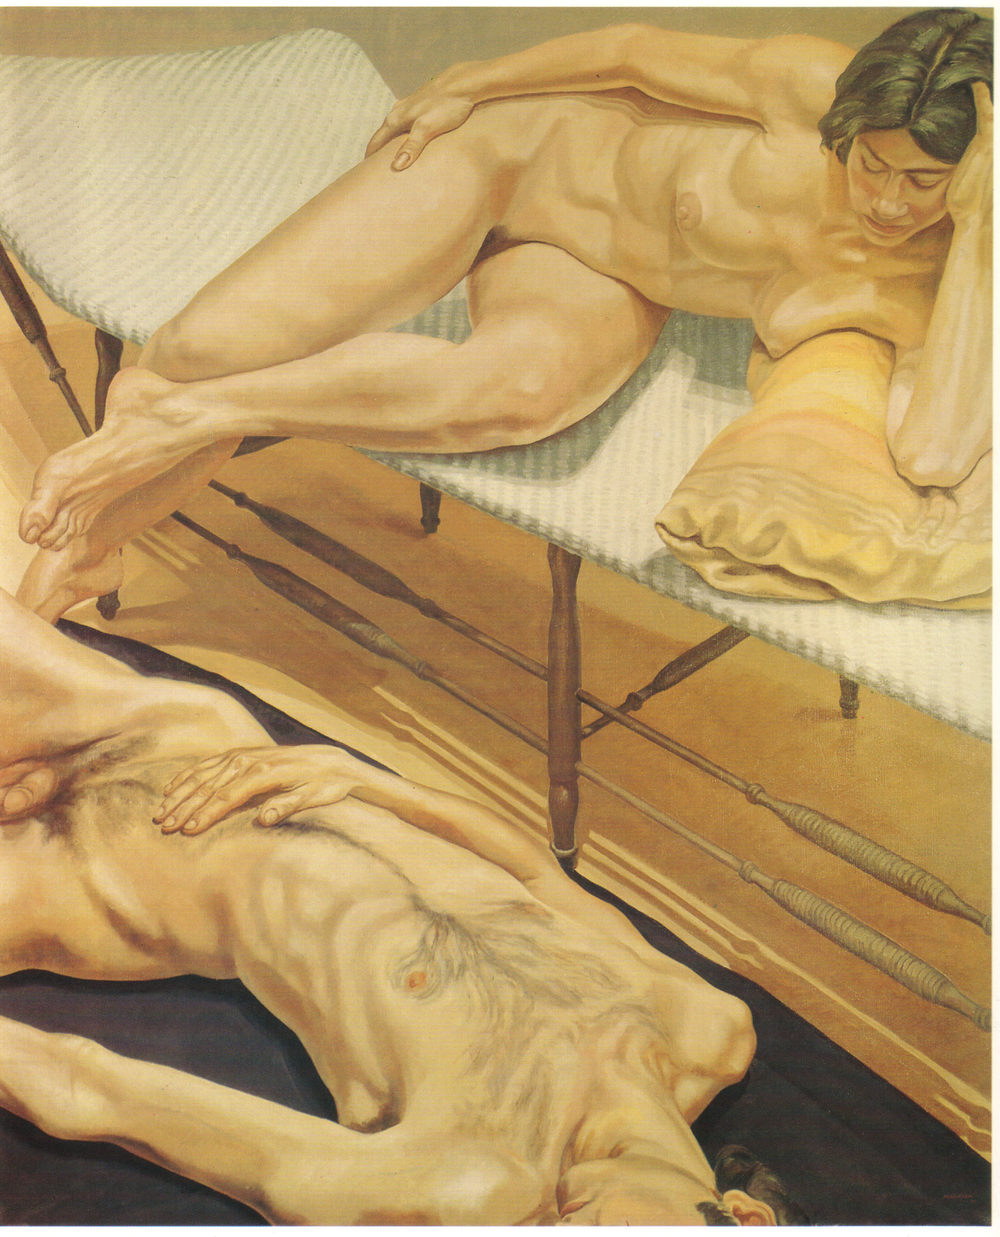 Male and Female Nudes Reclining , 1970 Oil on canvas 71 x 59 in